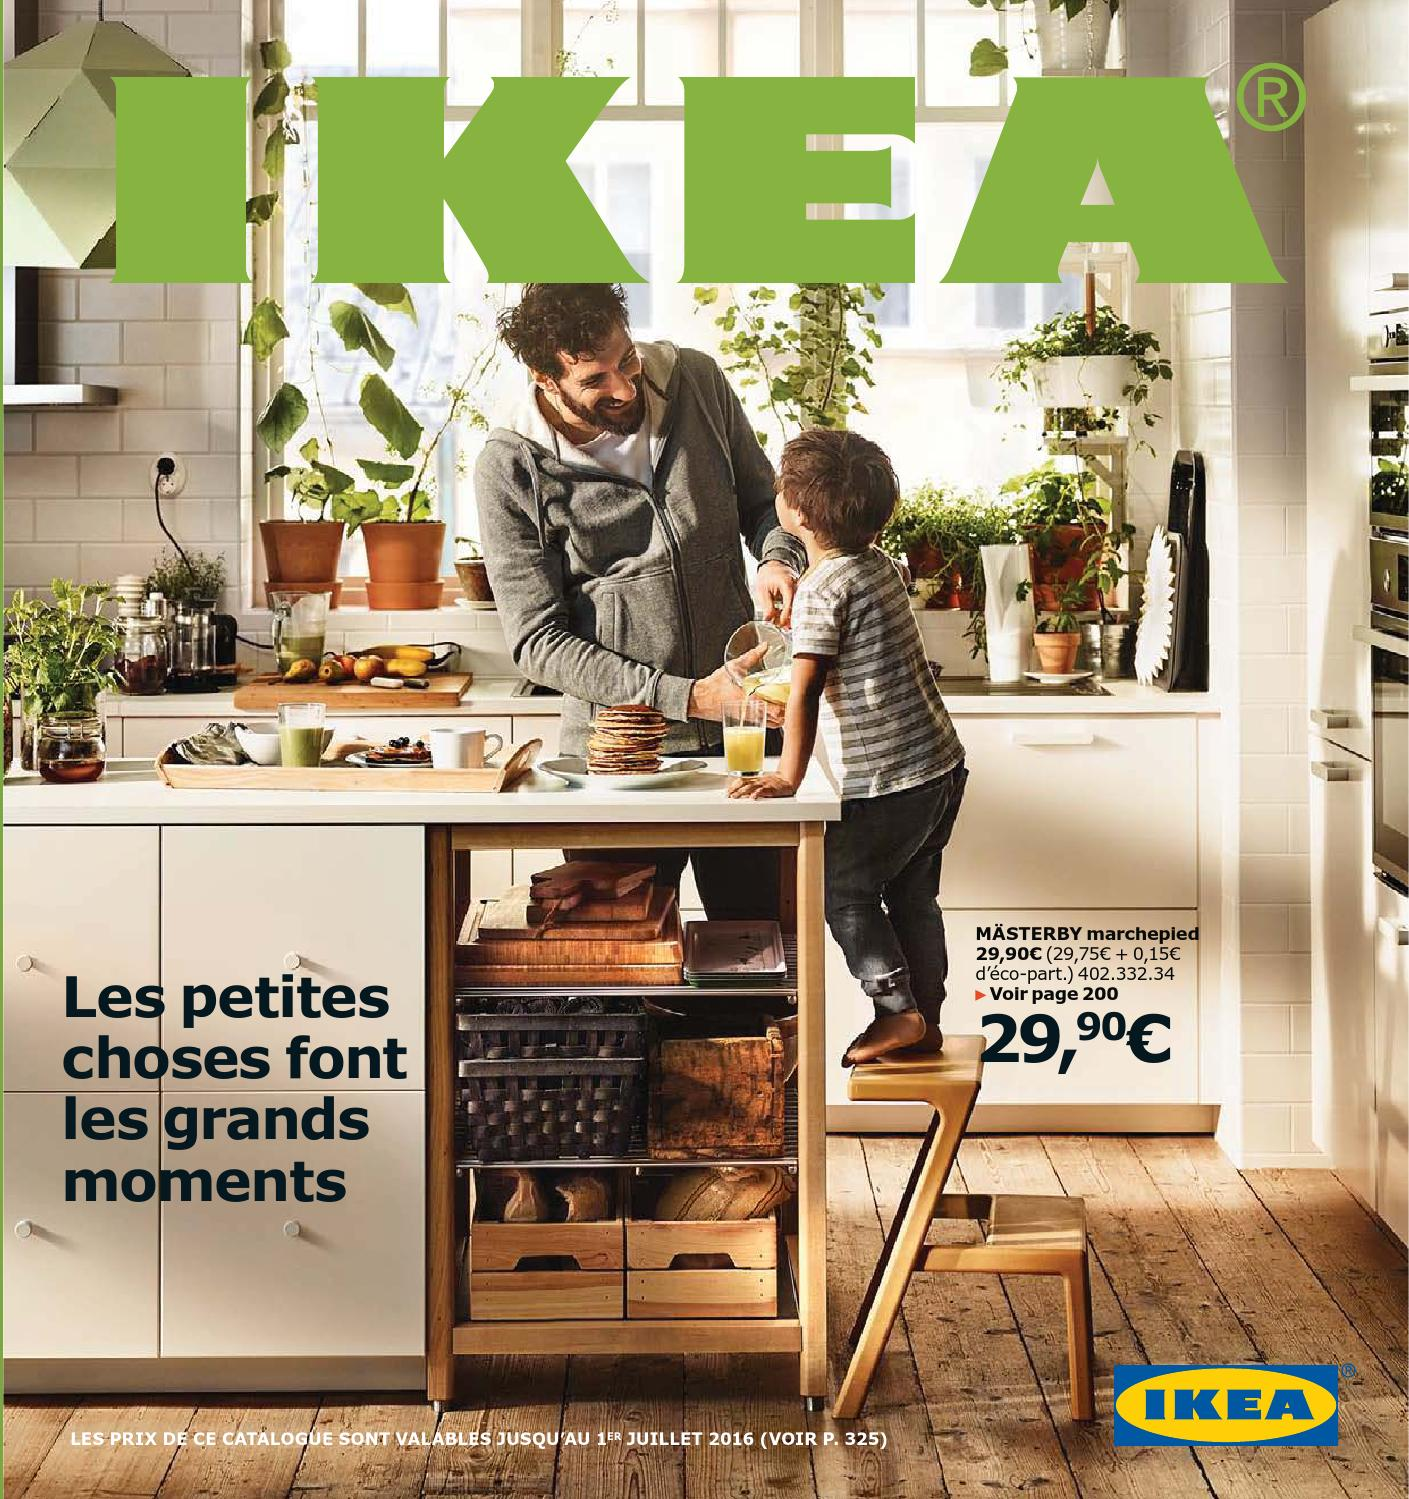 Ikea Creteil Soleil Ikea Catalogue 2016 By Margot Ziegler Issuu